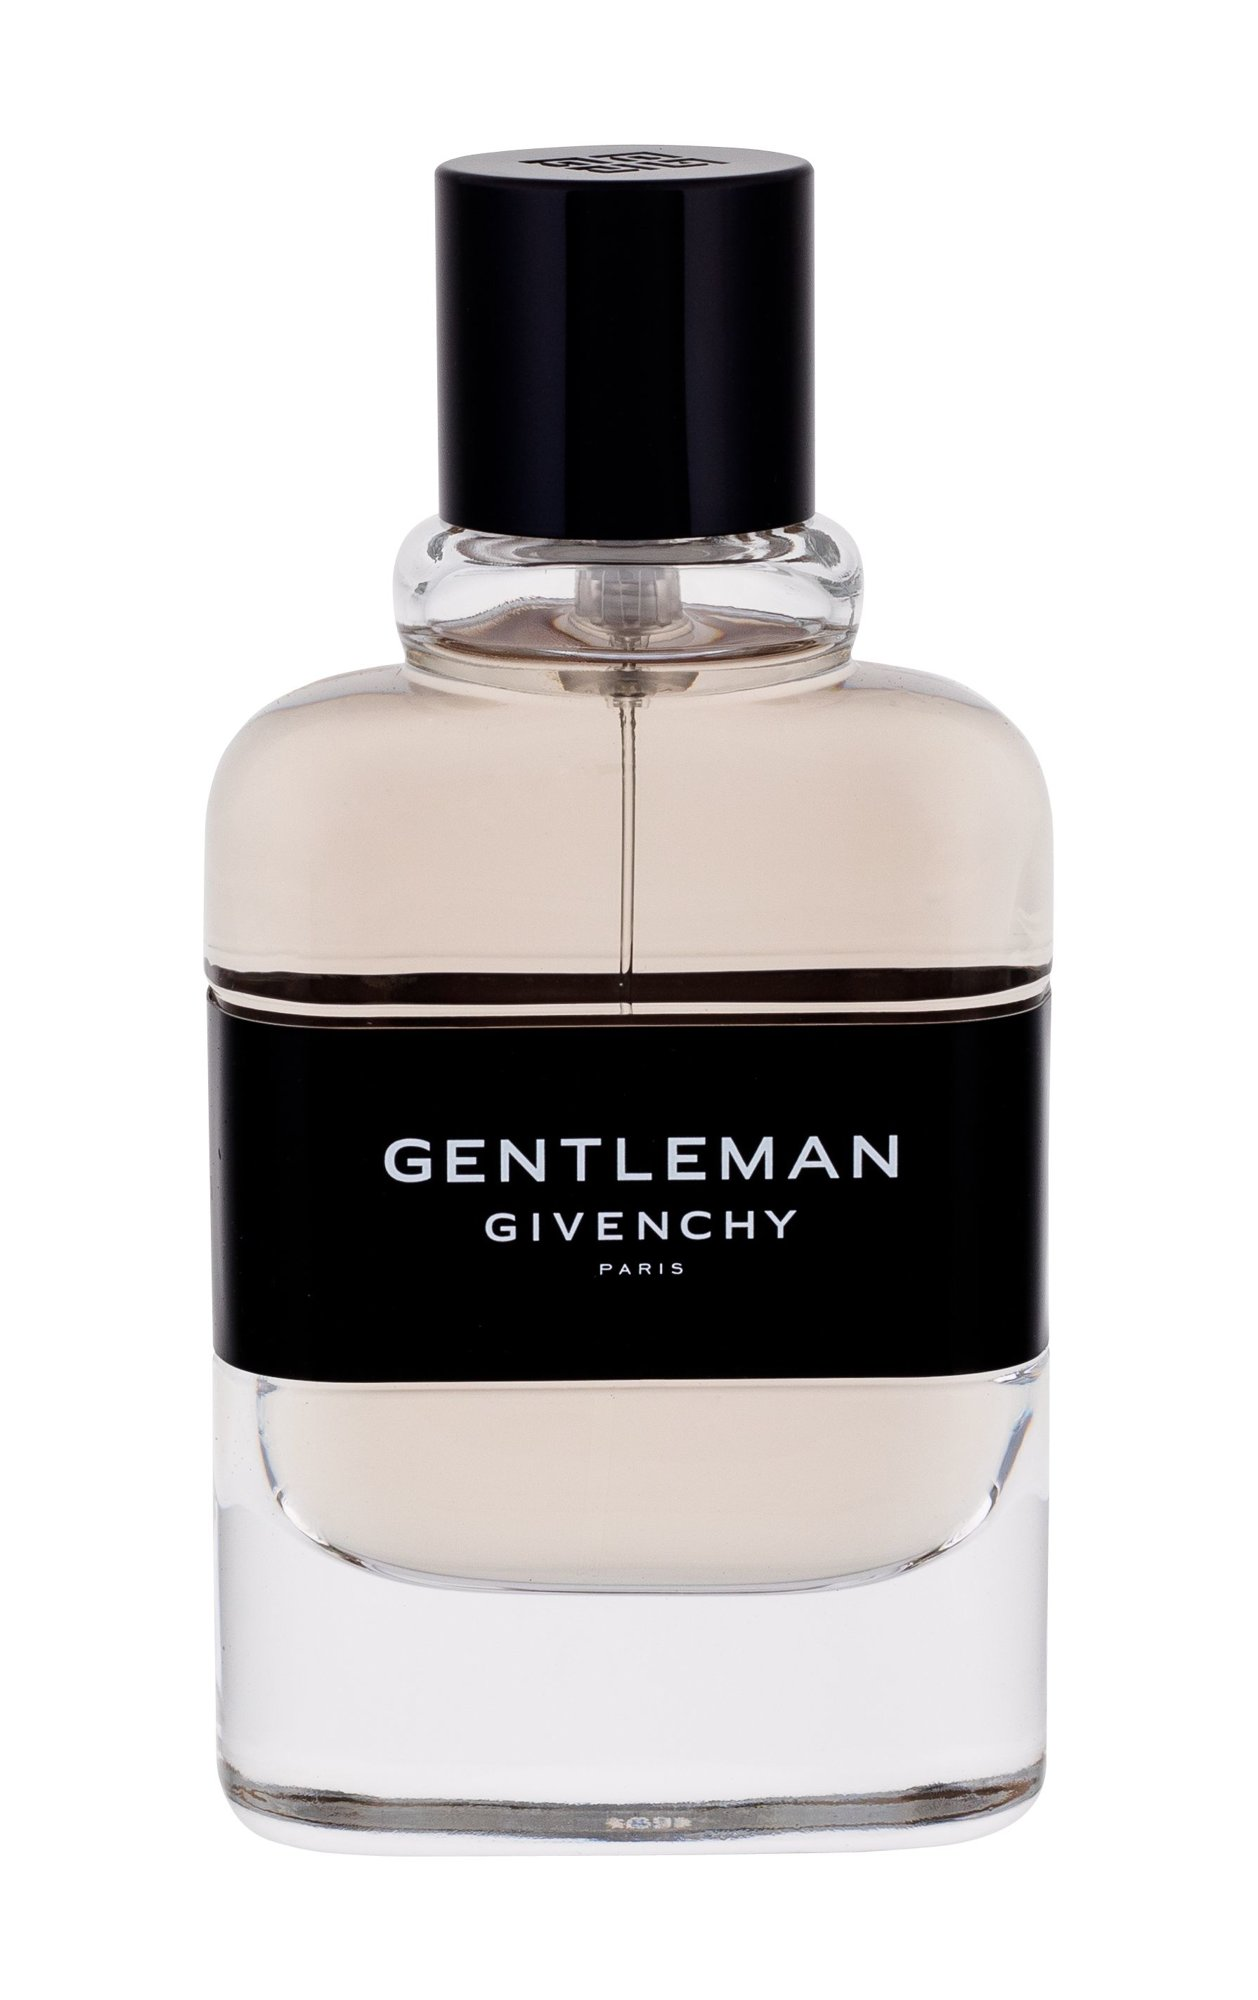 Givenchy Gentleman Eau de Toilette 50ml